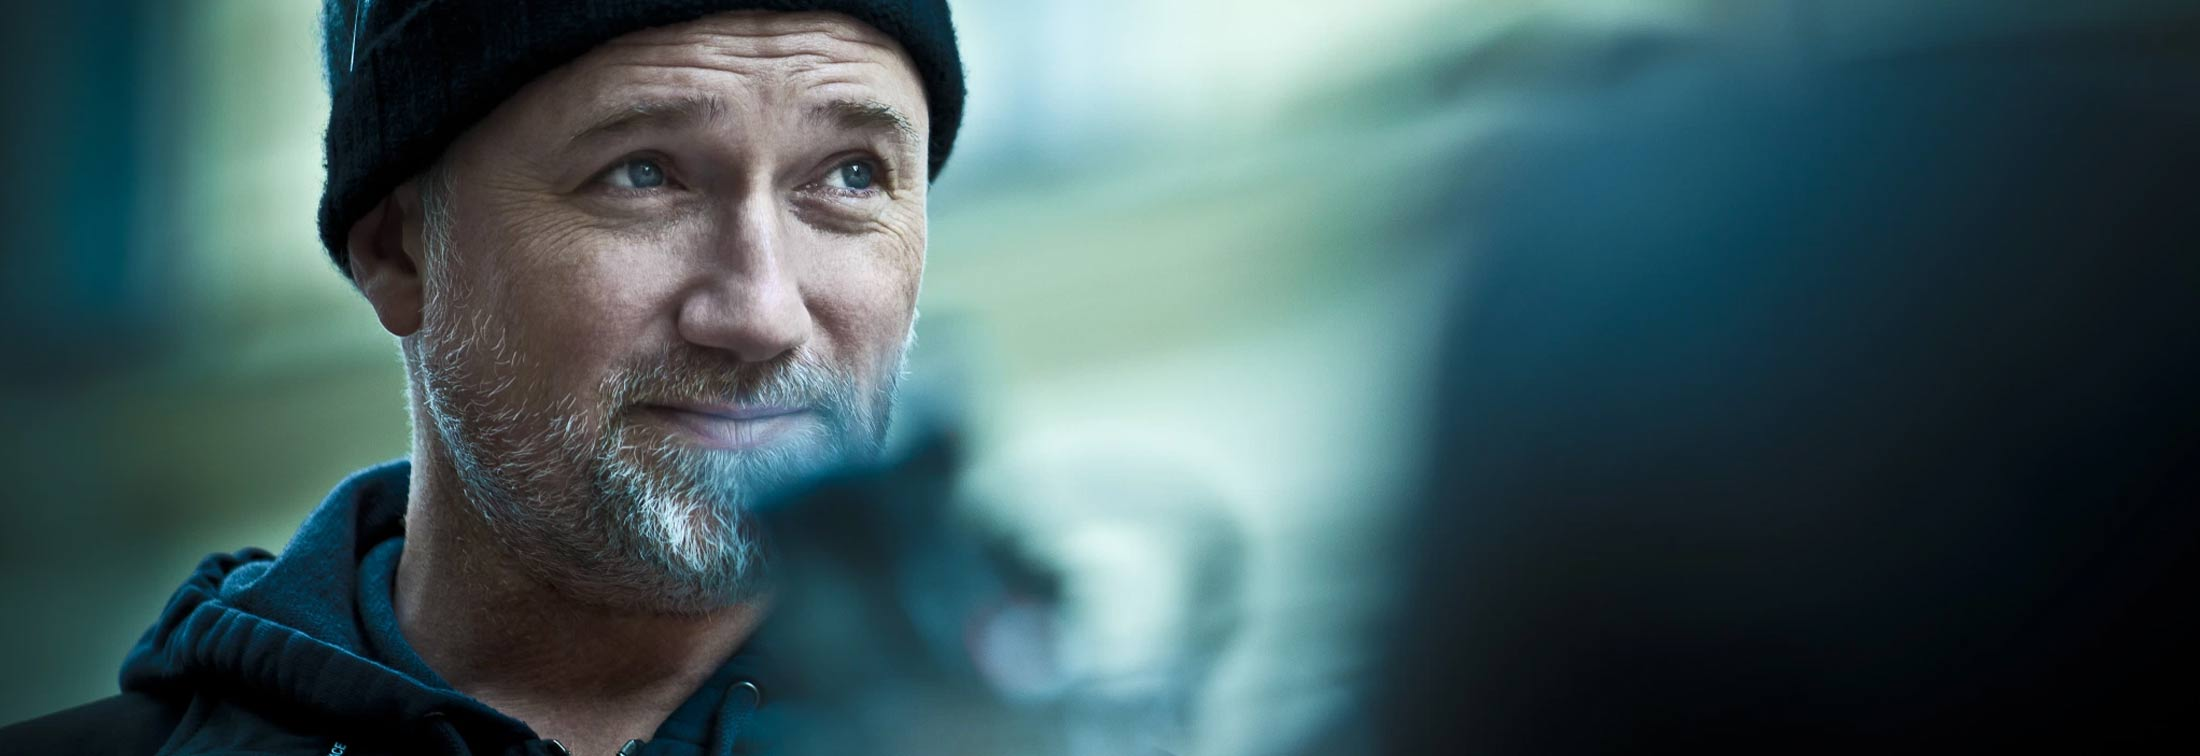 David Fincher, ranked - The darkness and the soul of a legendary filmmaker